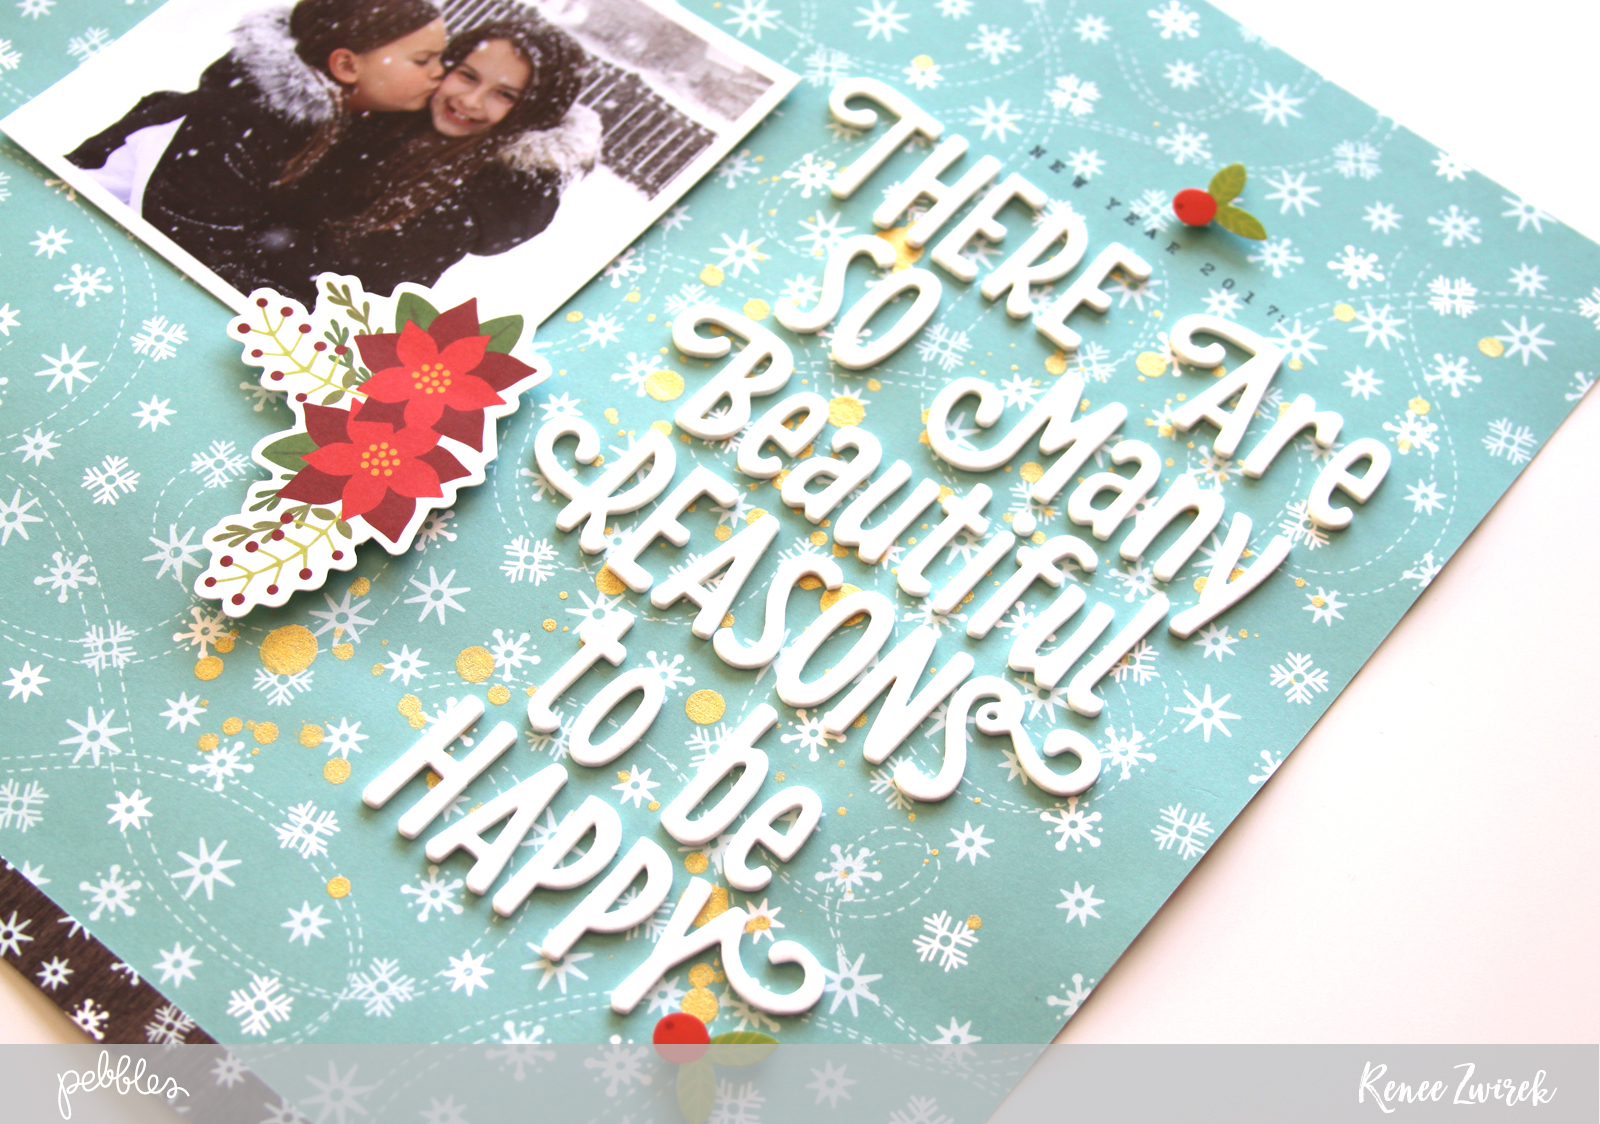 Create an uplifting layout for the new year using a favorite photo and quote with this Be Happy Layout by @reneezwirek using the #HollyJolly collection by @pebblesinc